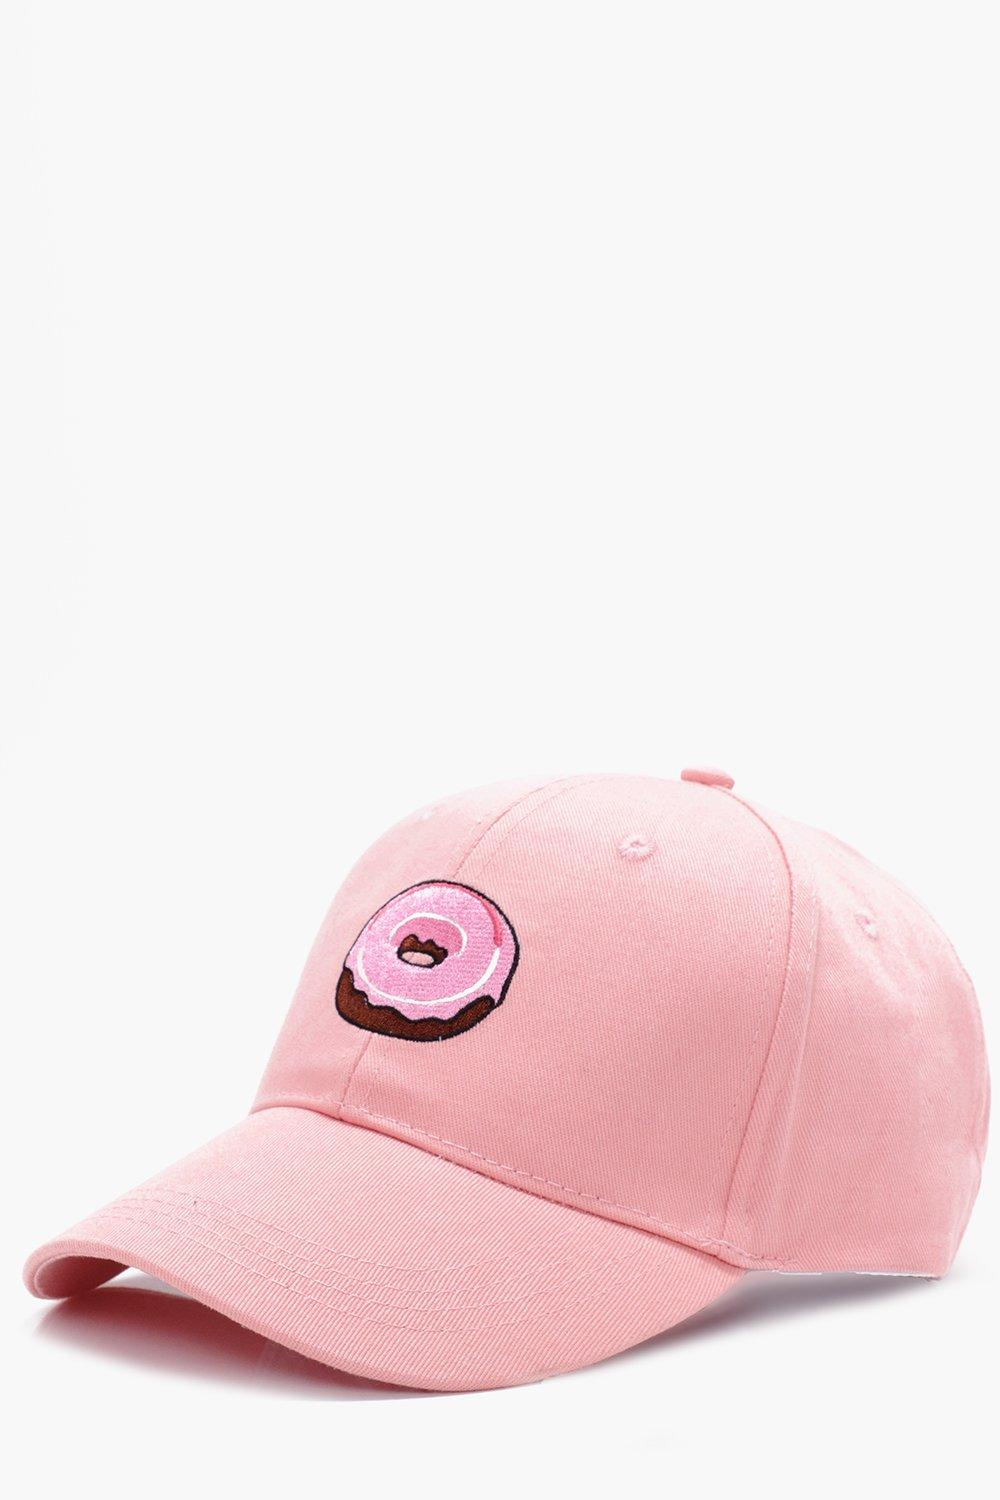 Embroidered Snapback Cap - pink - Donut Embroidere